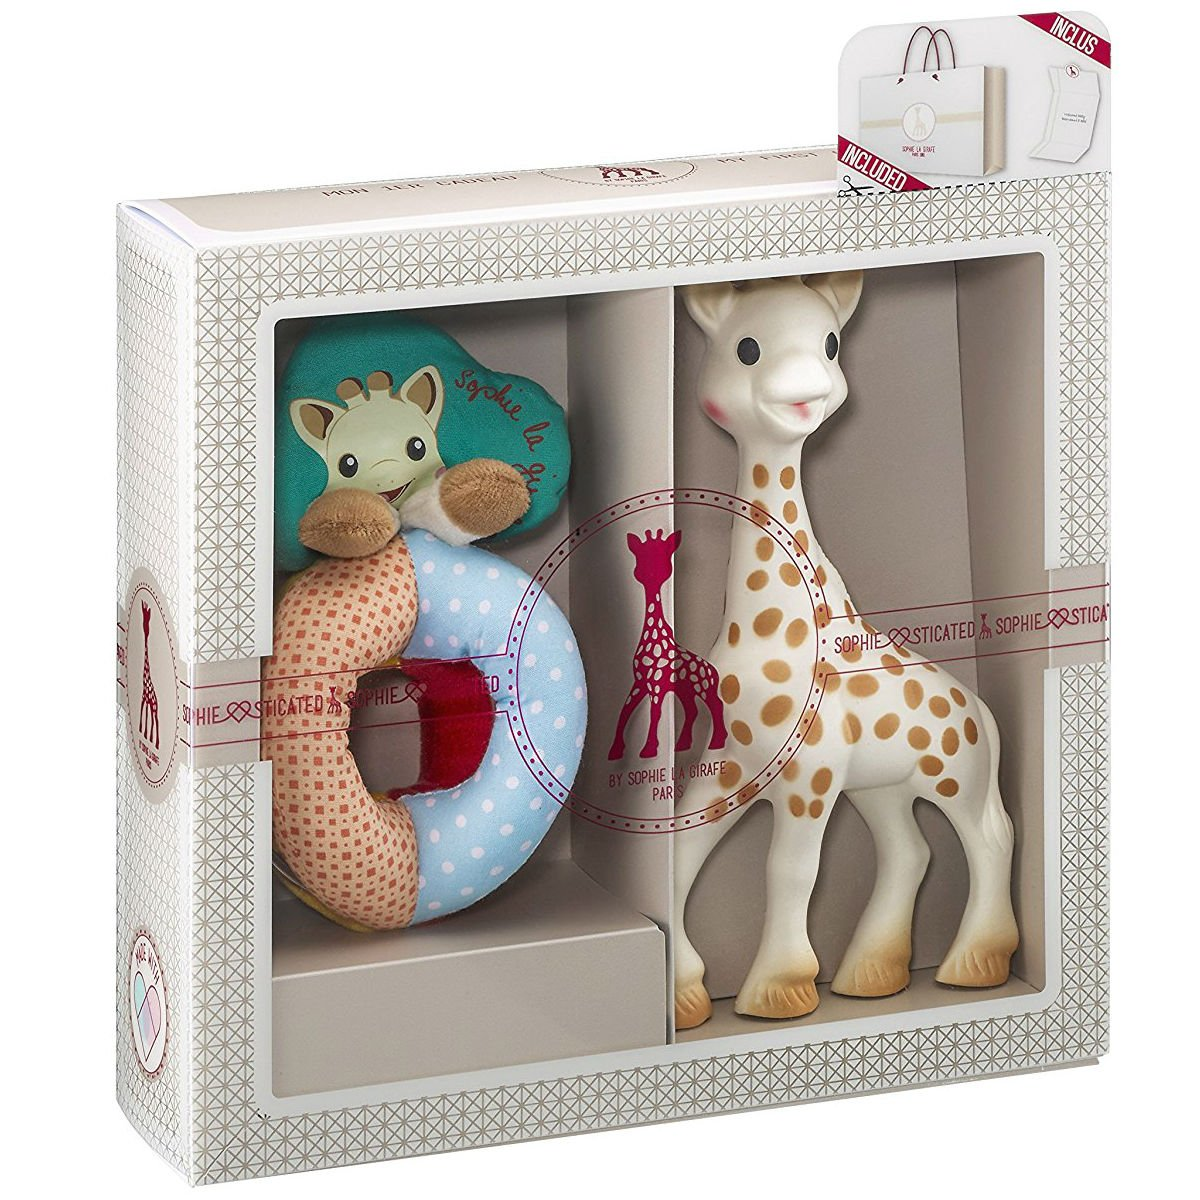 Vulli Sophie la Giraffe Sophiesticated Tenderness Creation Birth Set Small #2 - Rattle and Teether by Sophie La Girafe